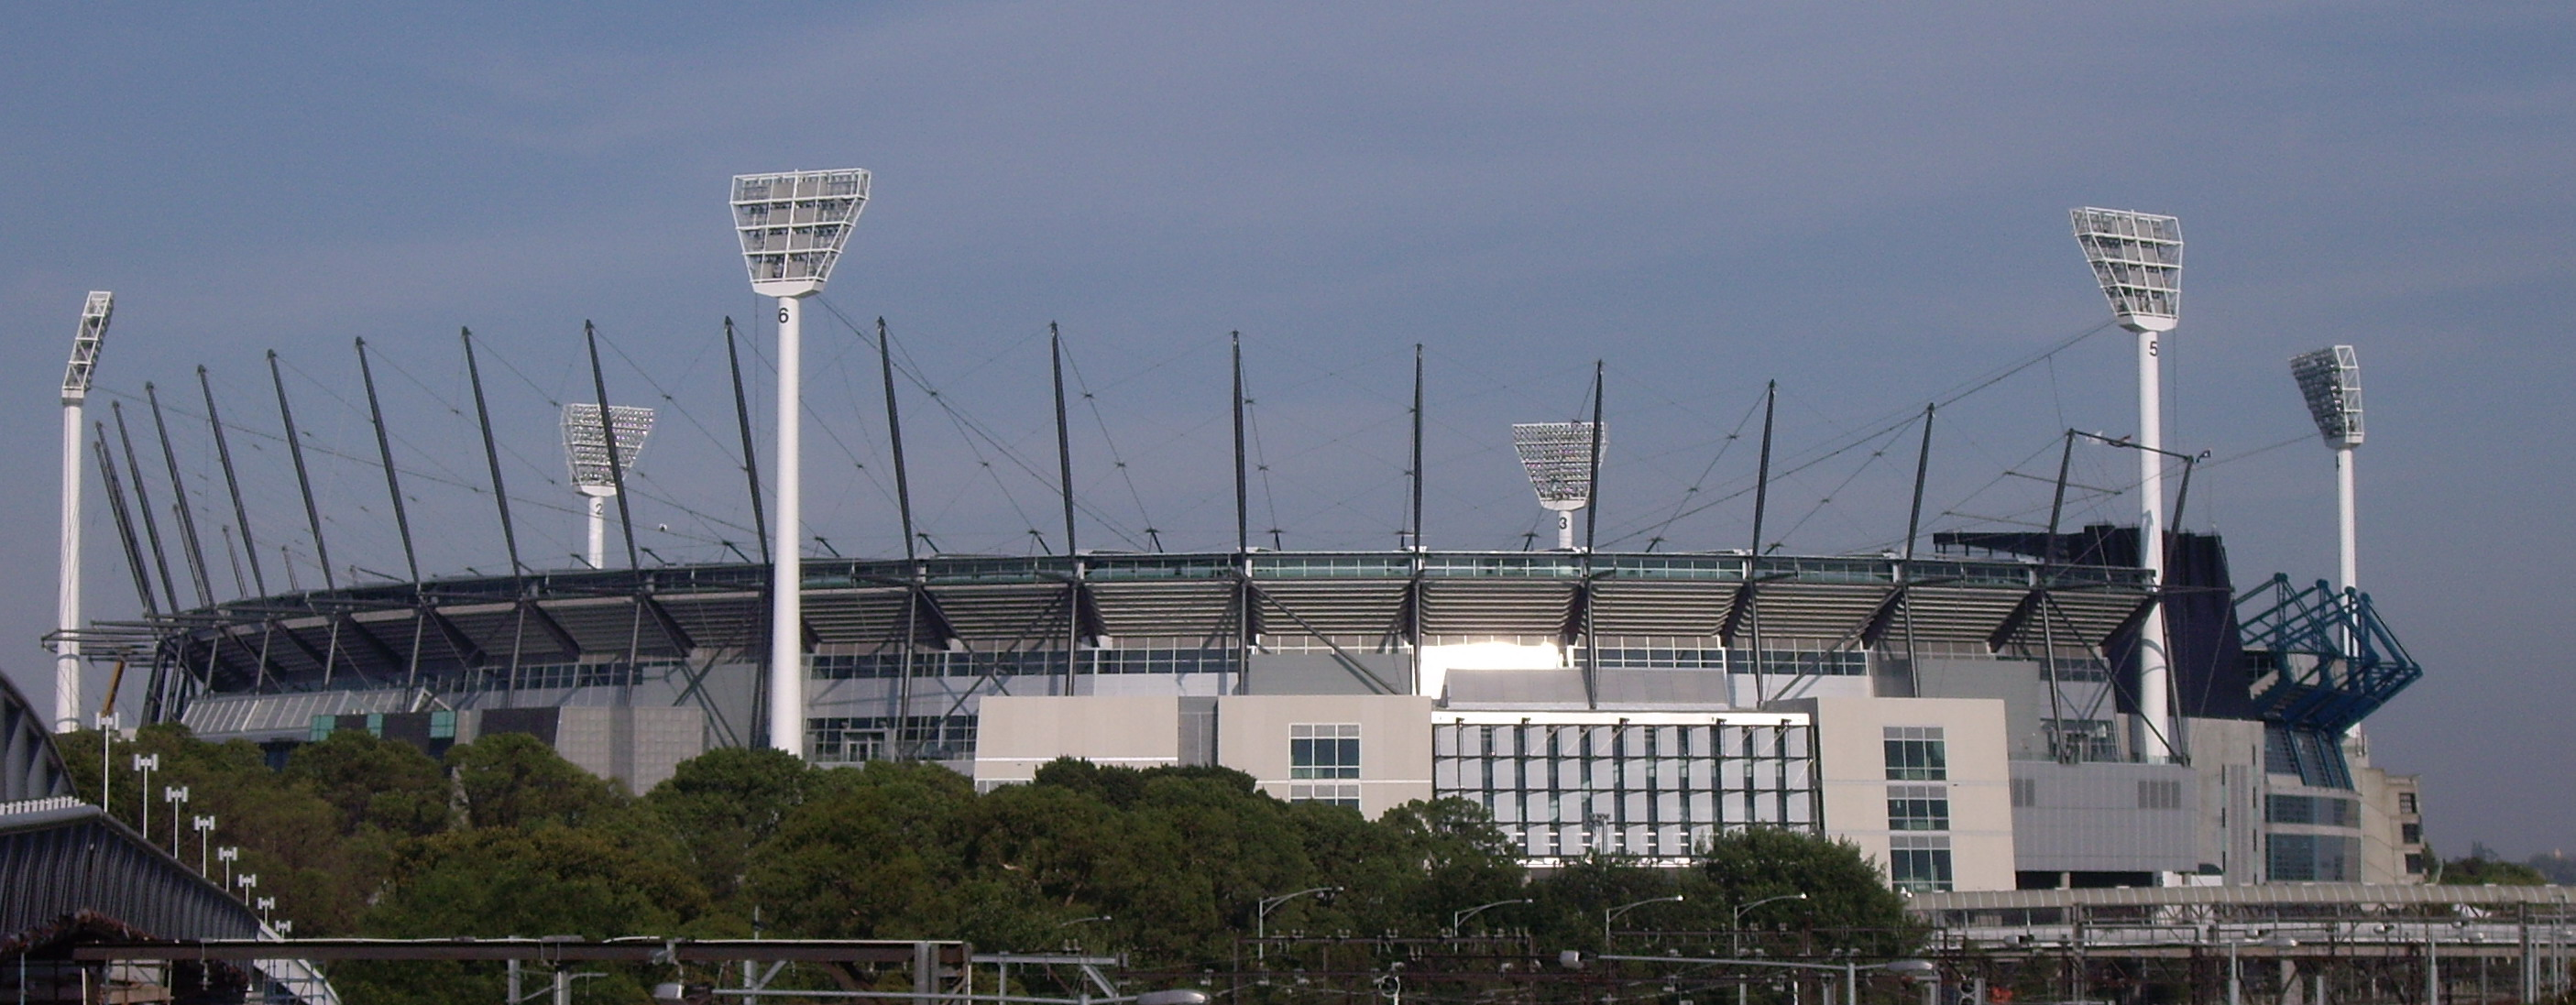 Renovated MCG for Commonwealth Games.jpg Melbourne Cricket Ground - fully renovated in time for the Commonwealth Games Date February 2006